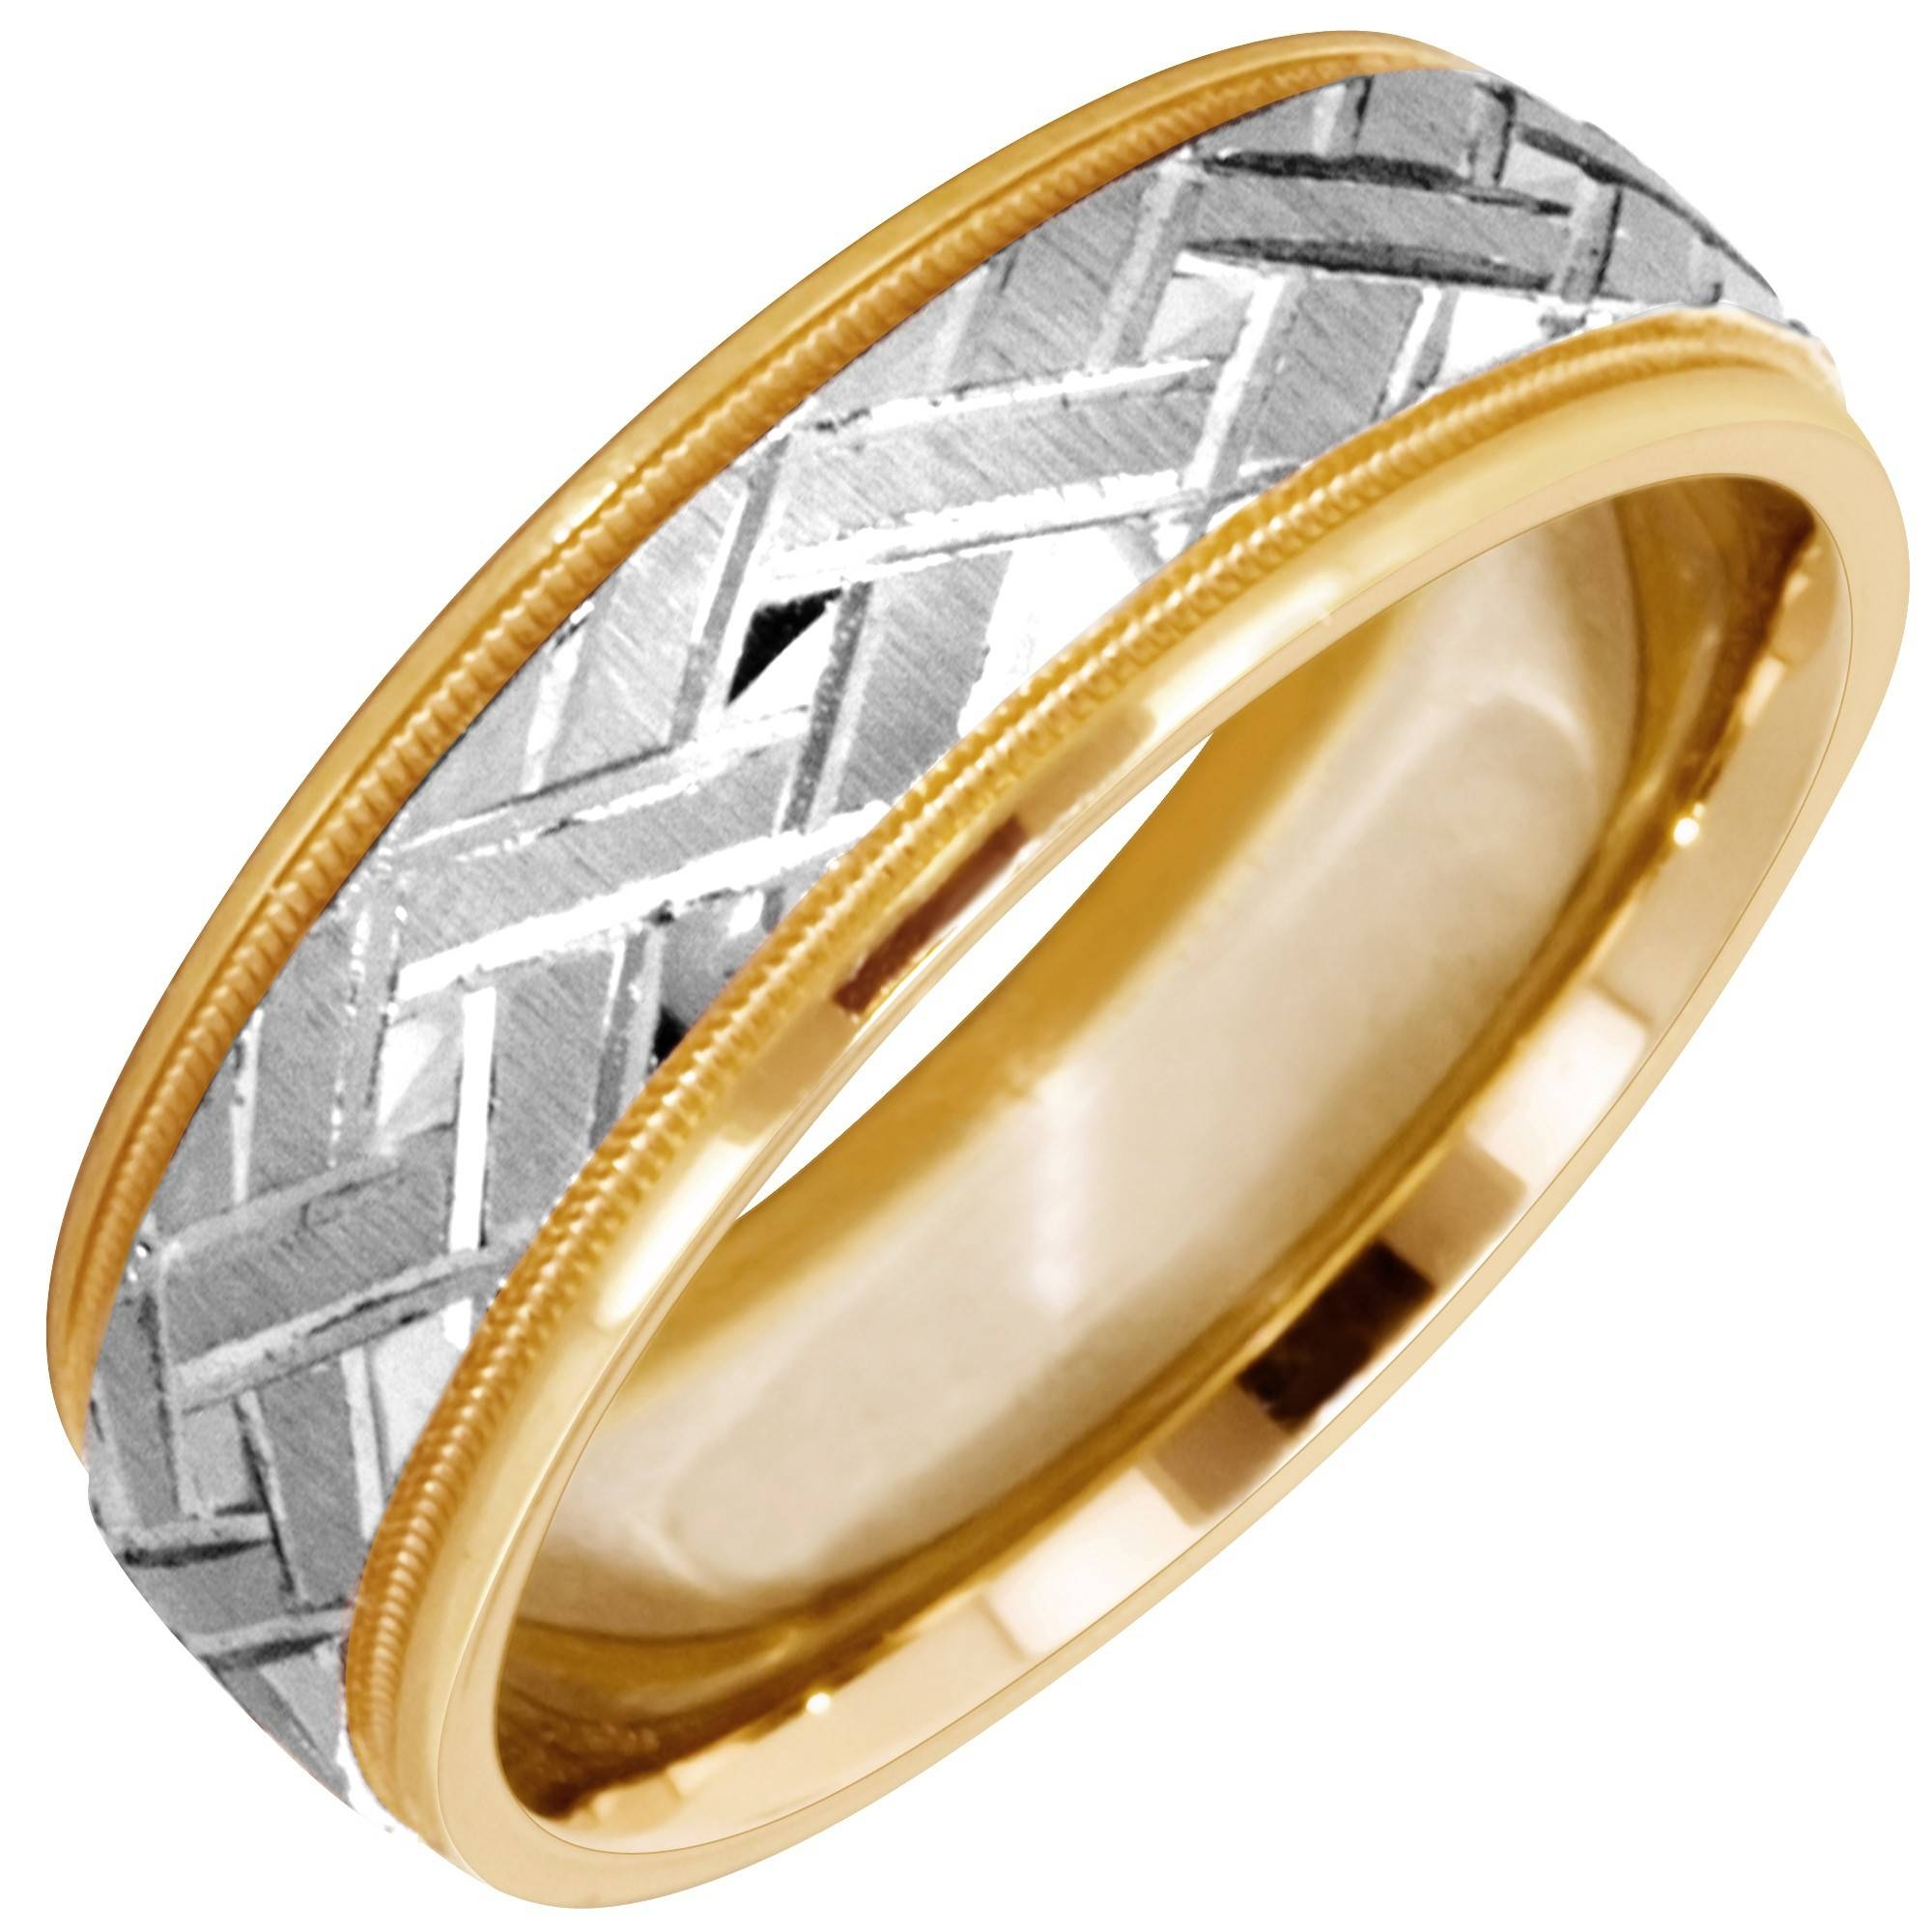 Artcarved Intrigue Mens Wedding Band In 14Kt Yellow And White Gold For Art Carved Wedding Bands (View 5 of 15)